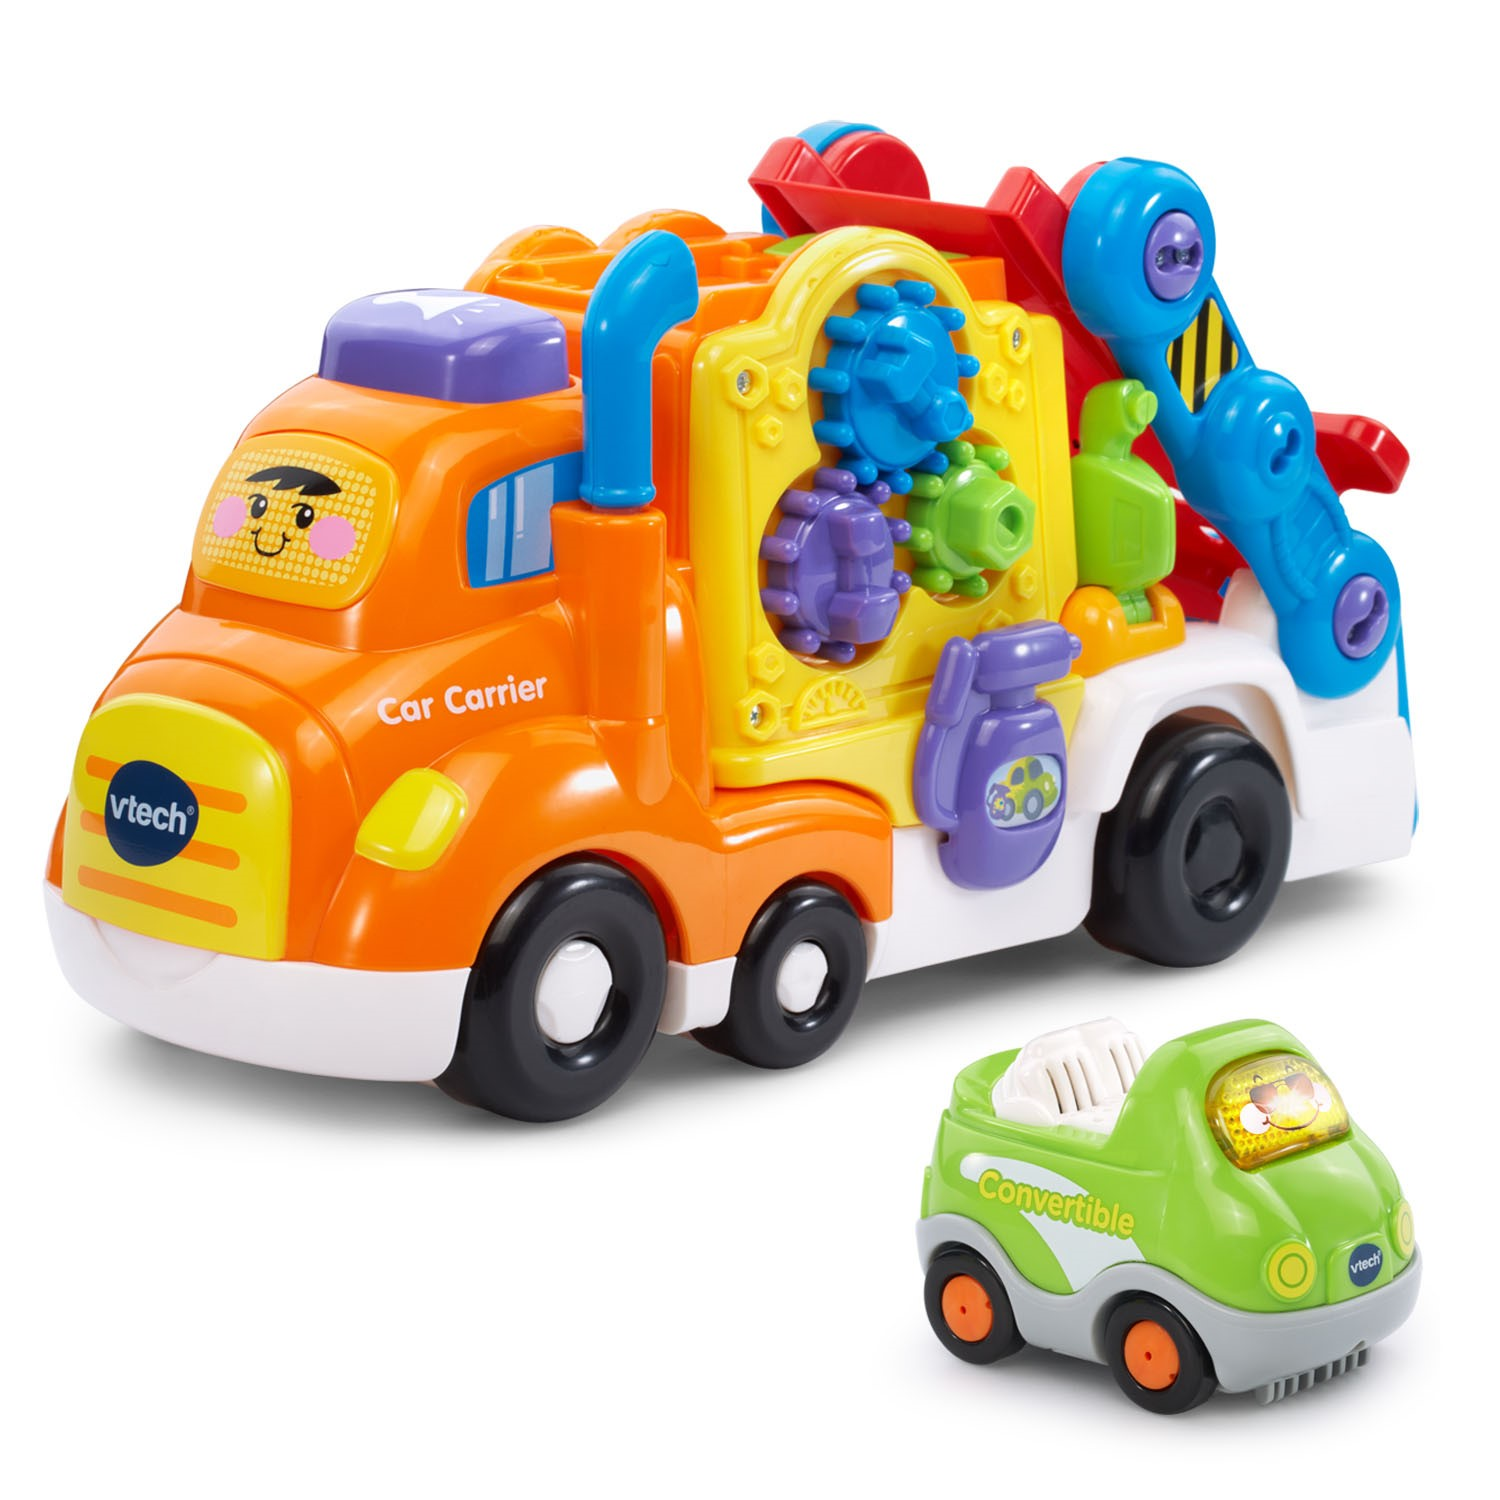 VTech Go! Go! Smart Wheels Deluxe Car Carrier by VTech